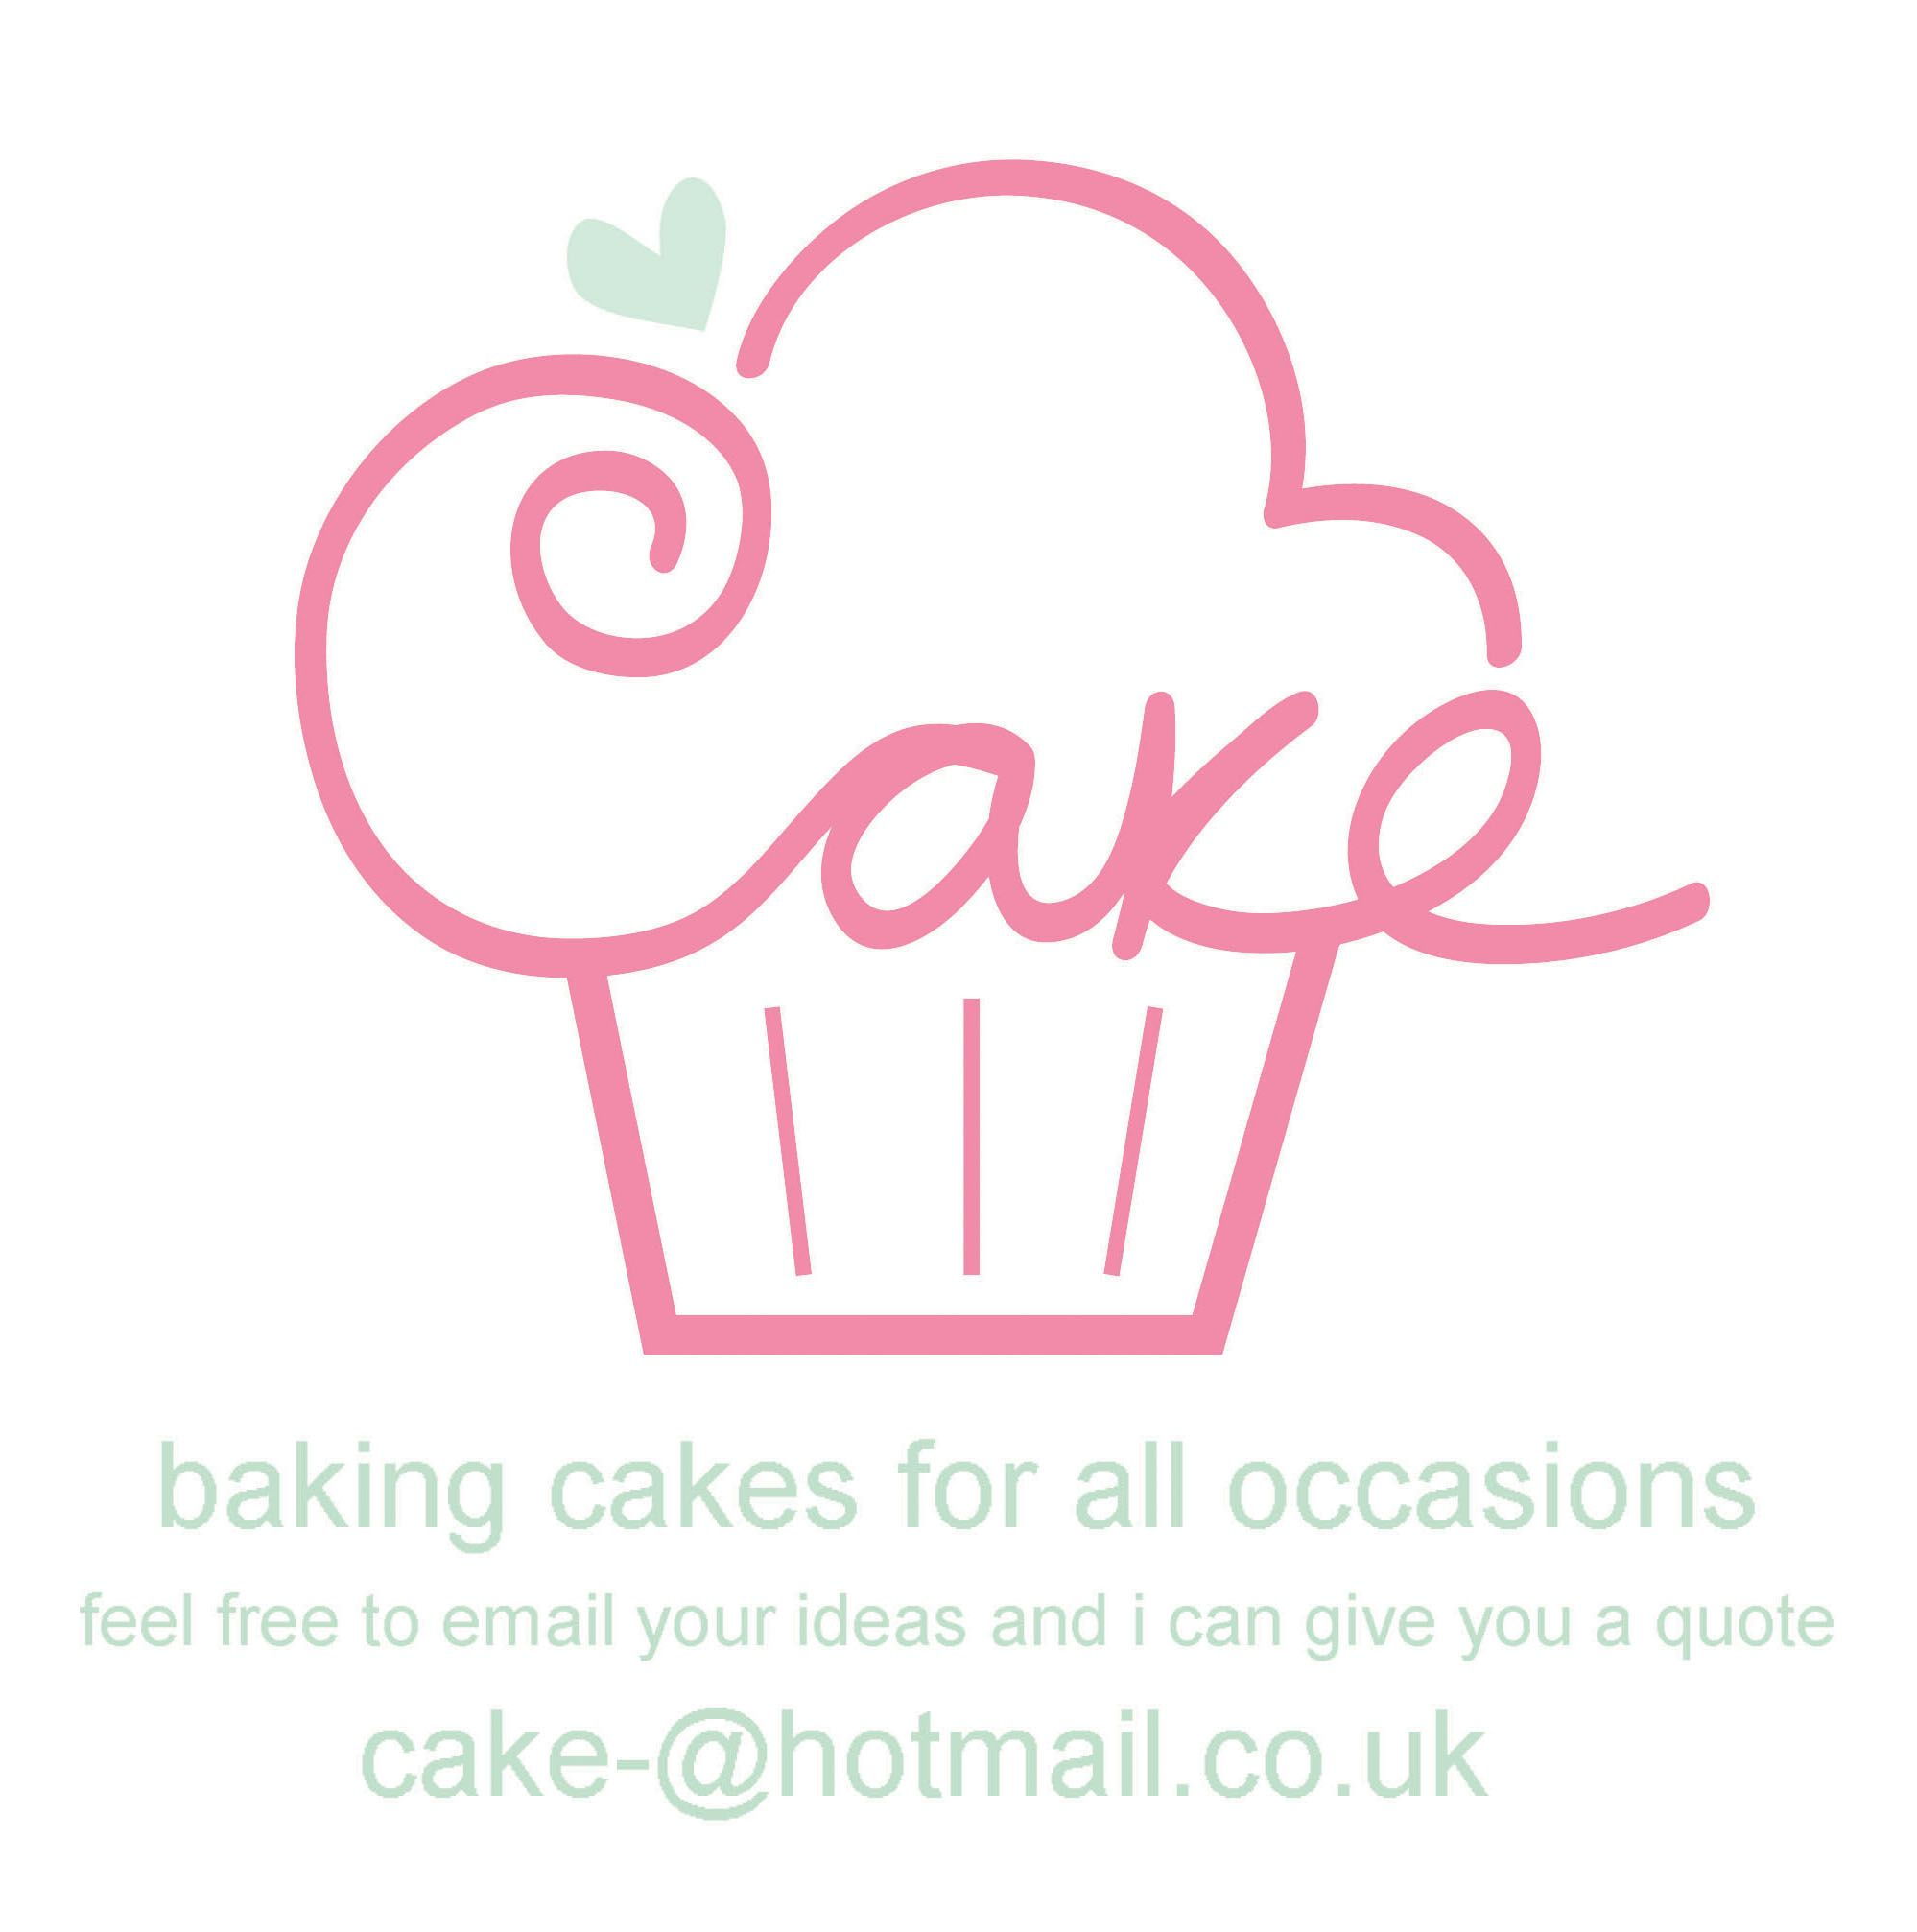 new cake logo: from the beginning | Cake logo, Business logo ...